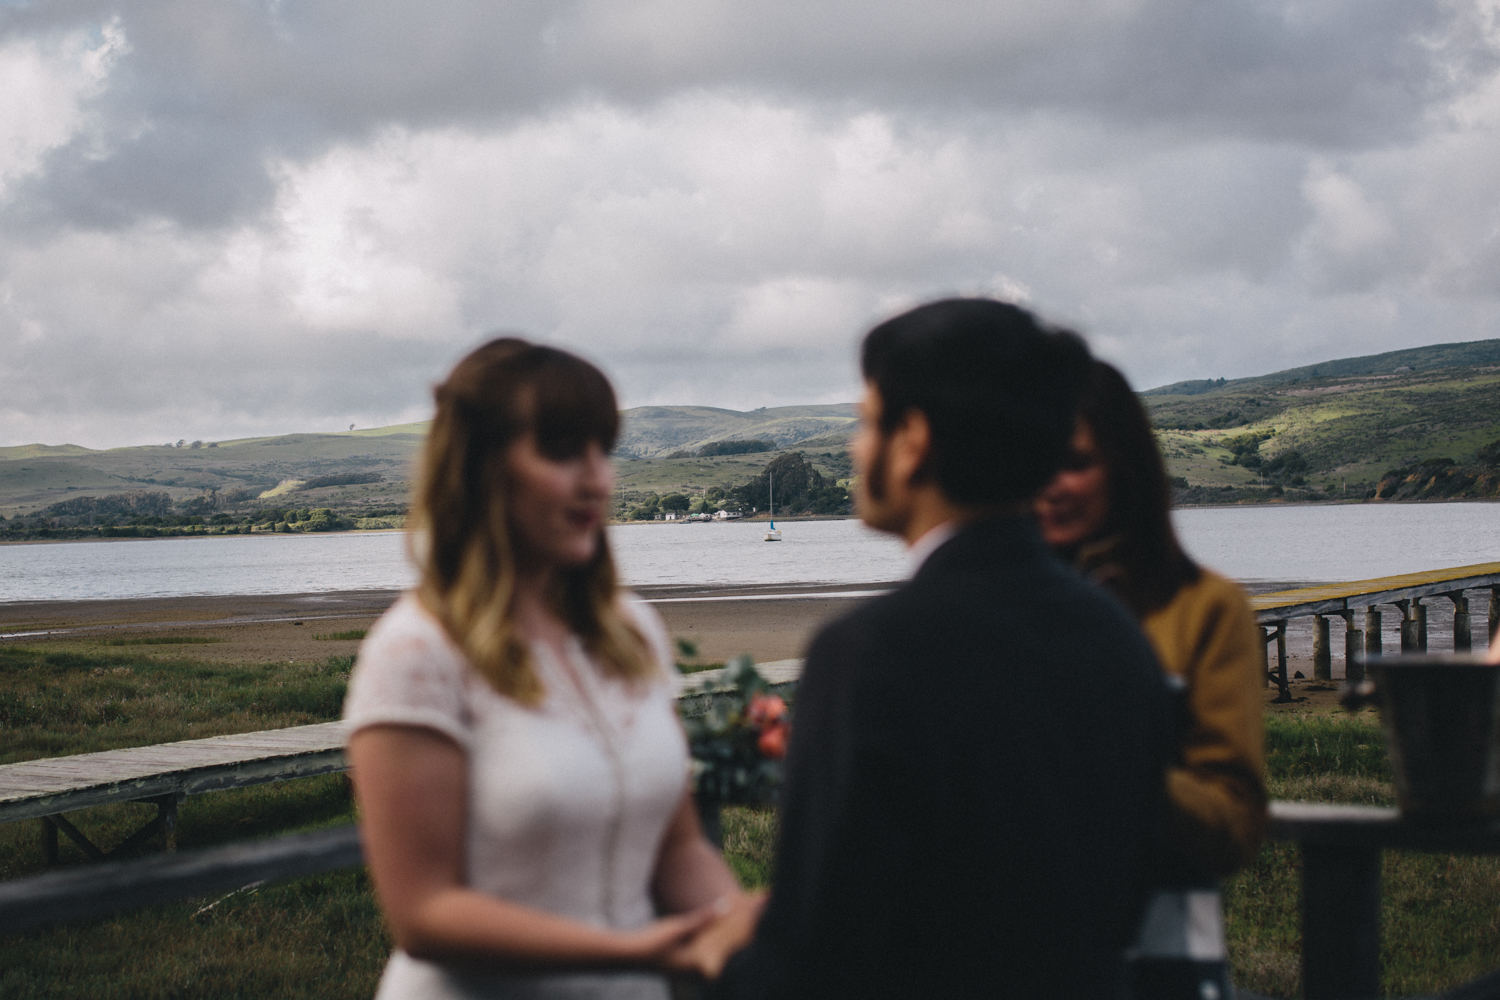 Point Reyes Inverness Wedding Photographer Rachelle Derouin-45.jpg